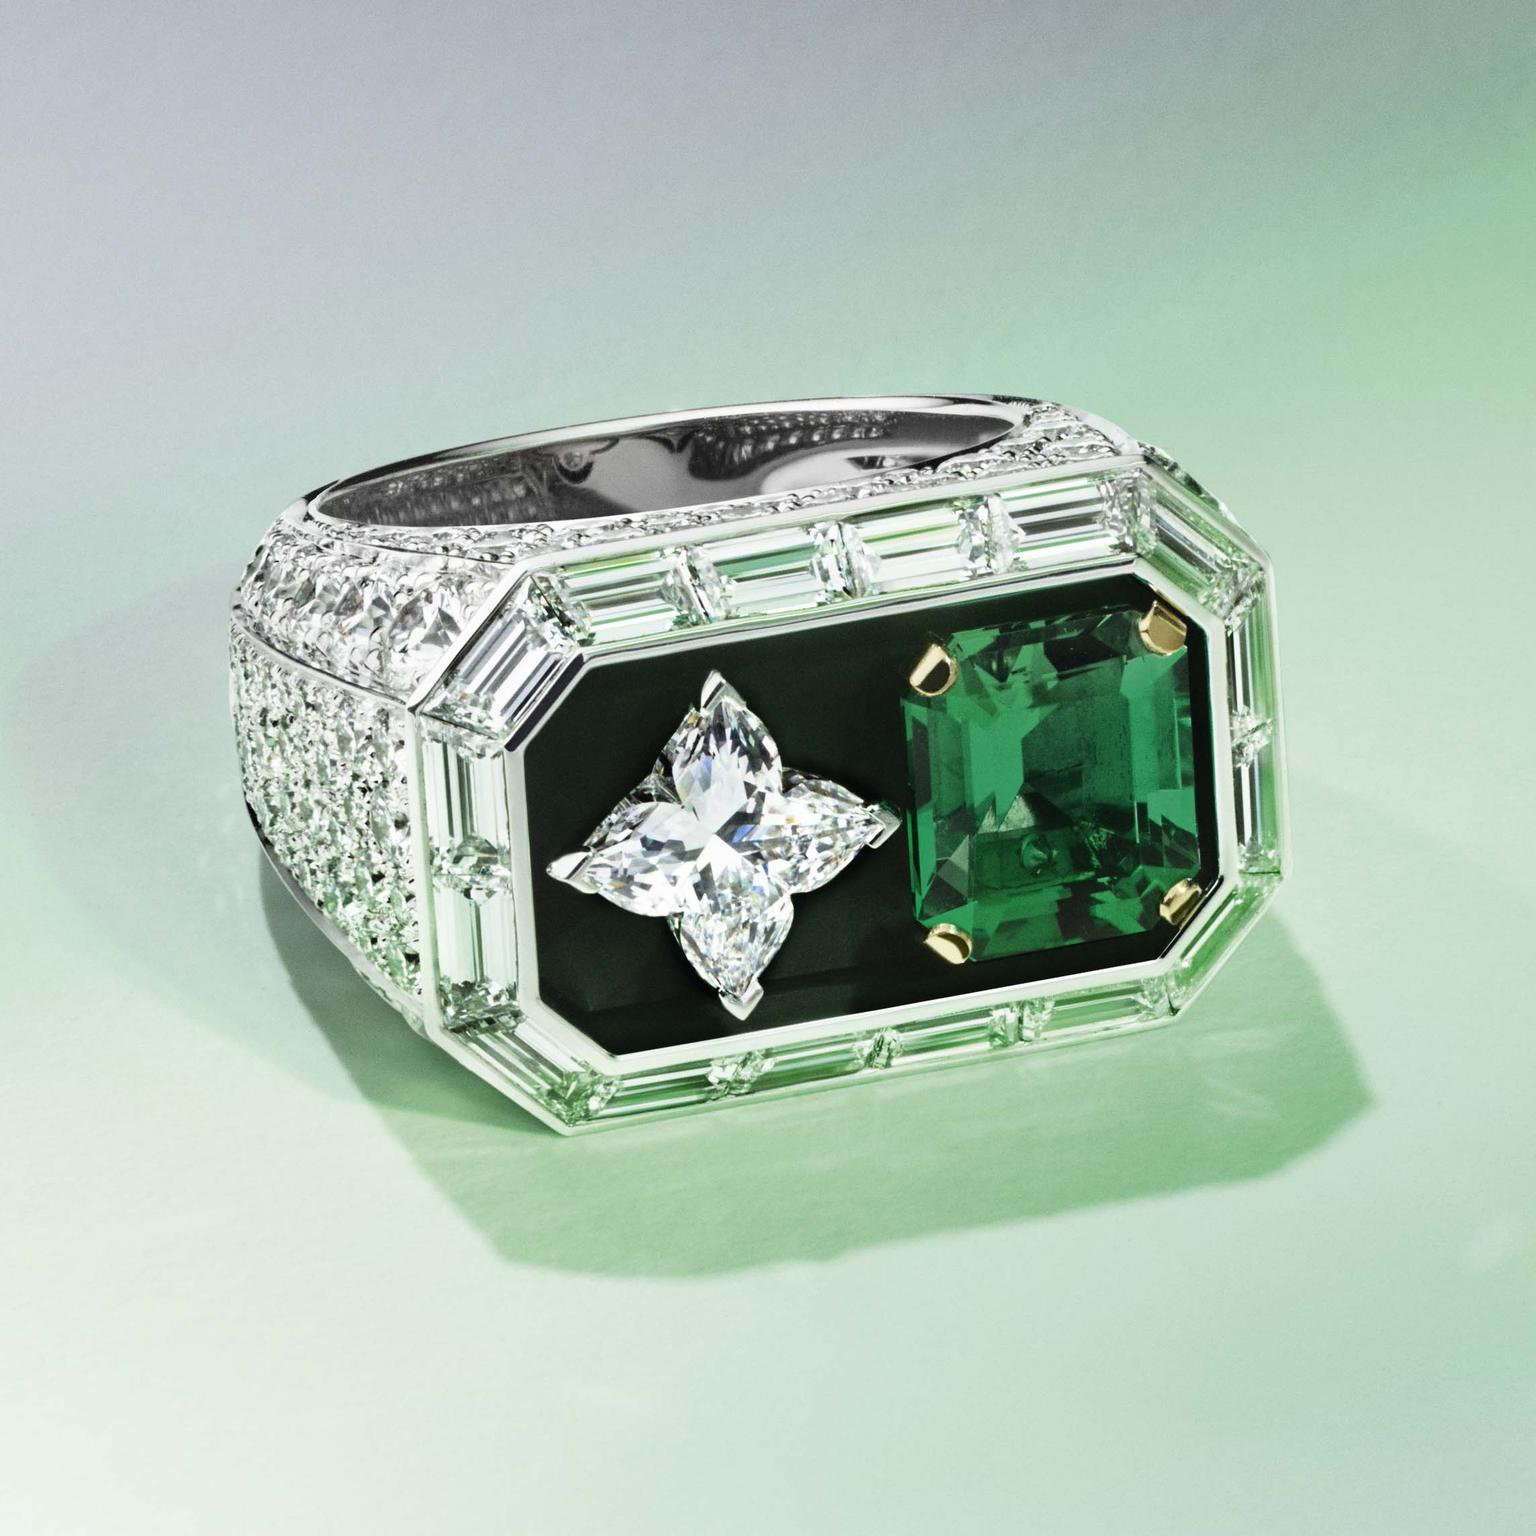 Louis Vuitton Riders of the Knights Le Royaume diamond and emerald ring